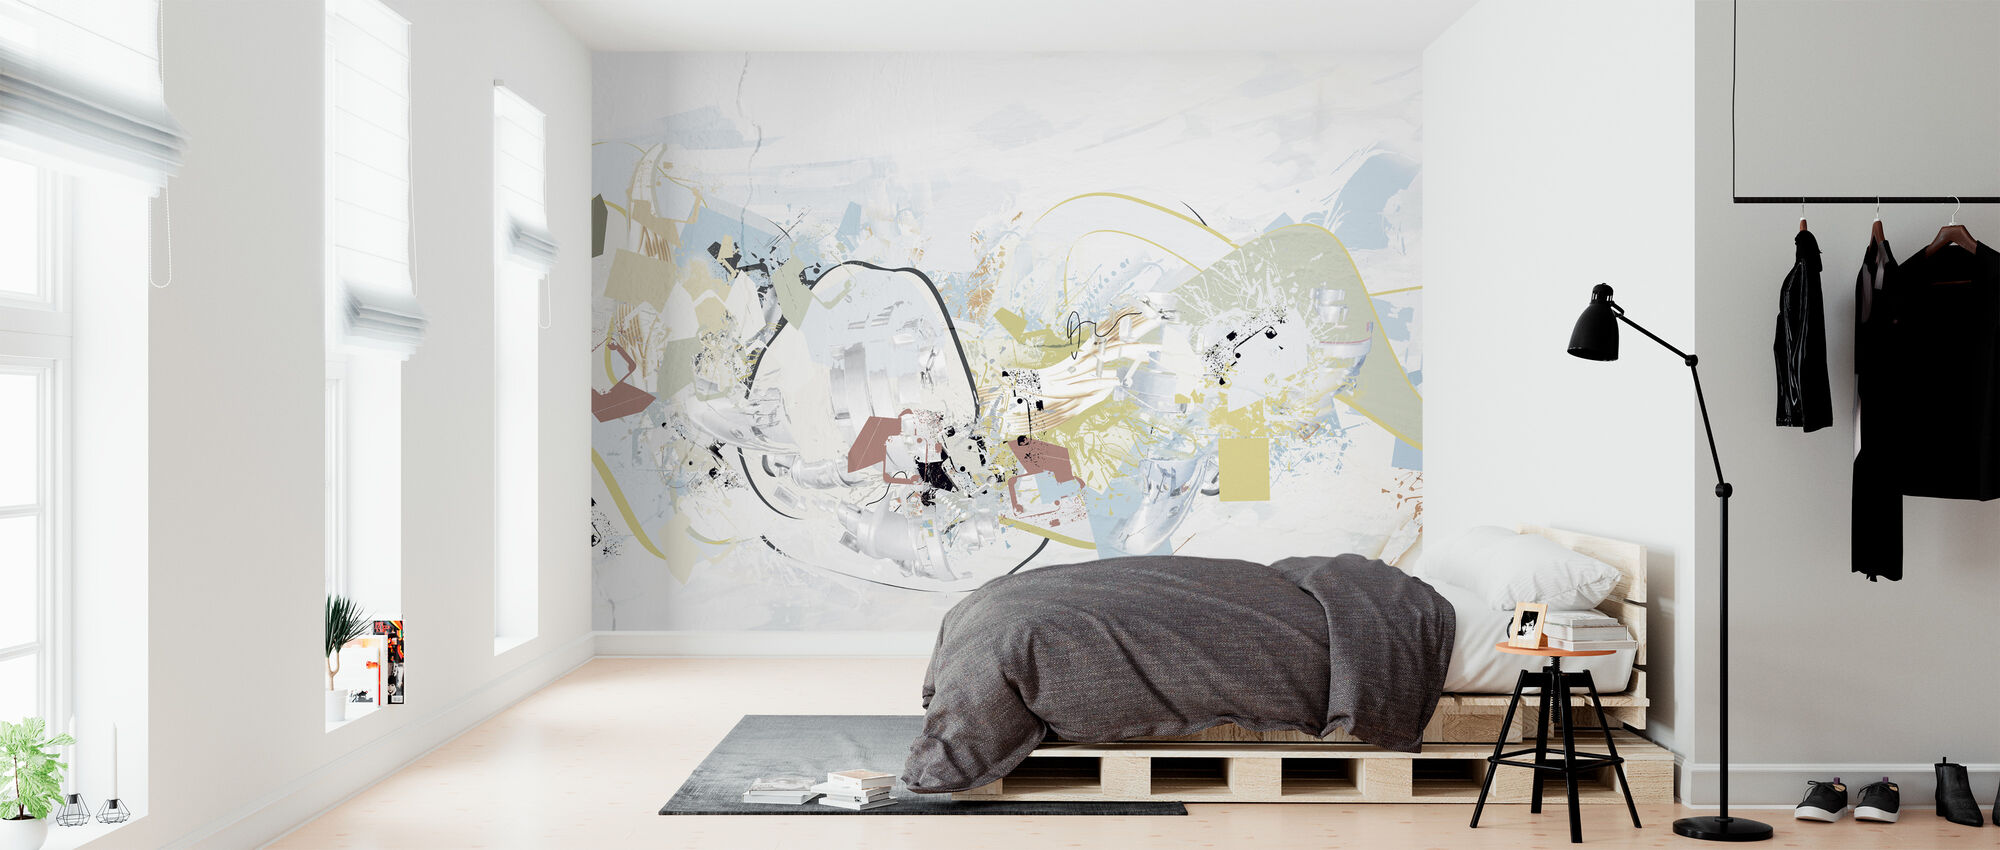 Roberto Marras - Kyara I Pastel - Wallpaper - Bedroom